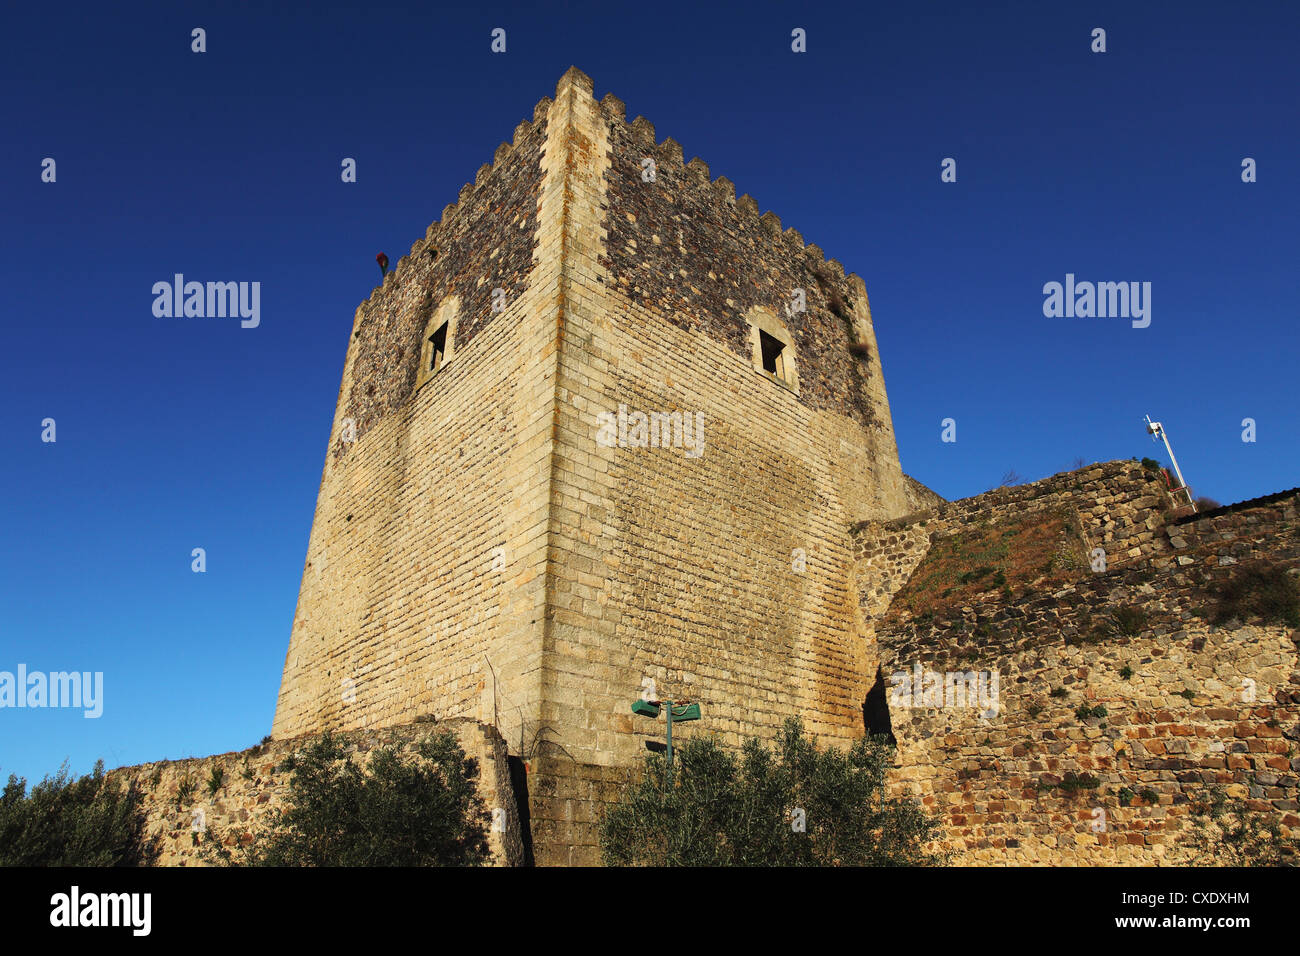 Square stone tower of the 14th century castle, built 1312 to 1327, at the walled city of Castelo de Vide, Alentejo, - Stock Image